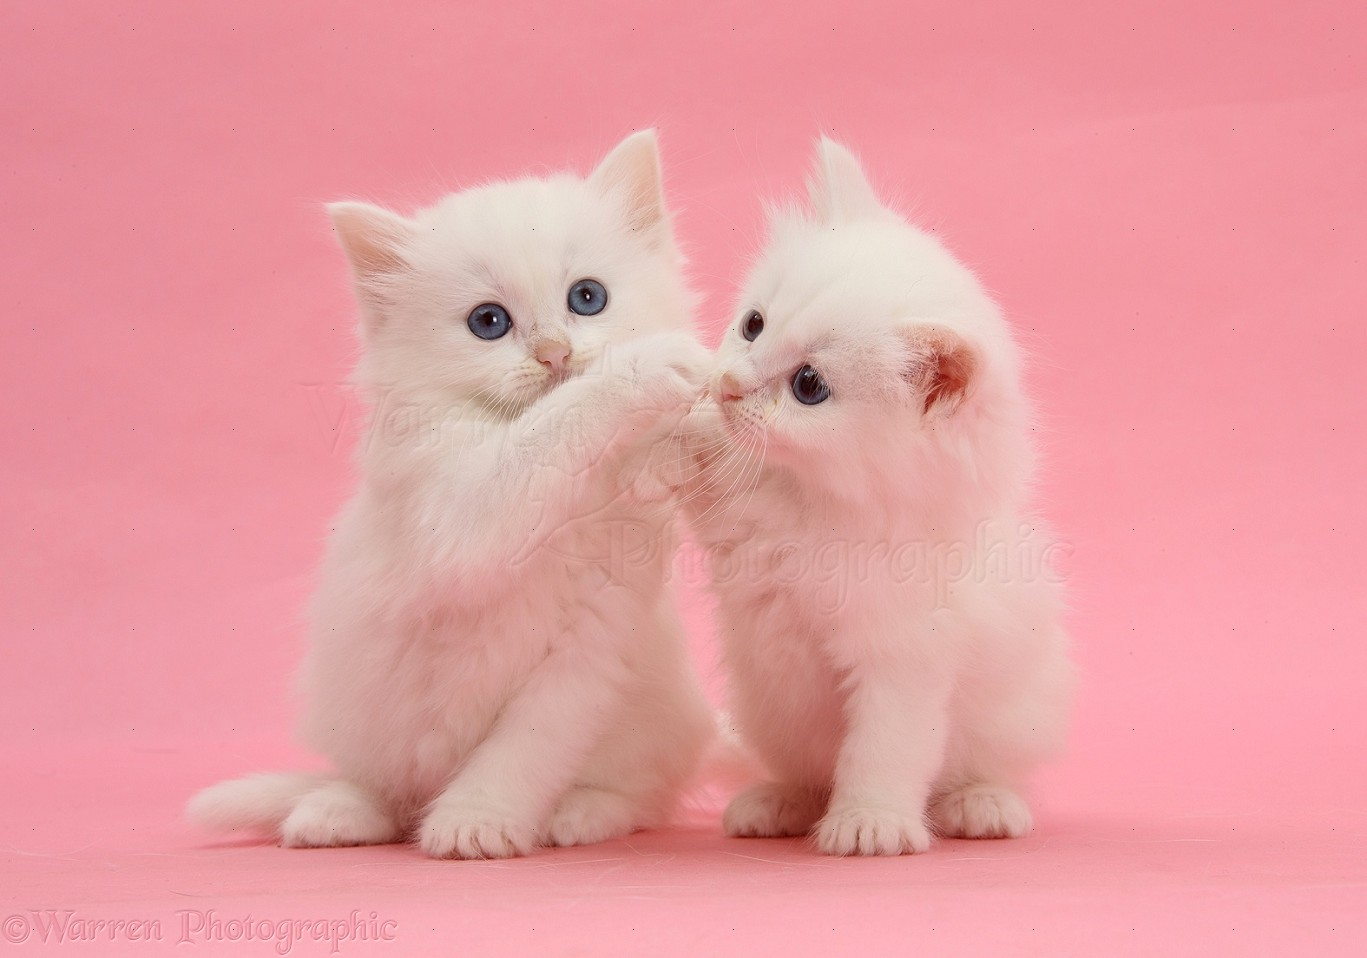 Two White Kittens On Pink Background Photo WP27070